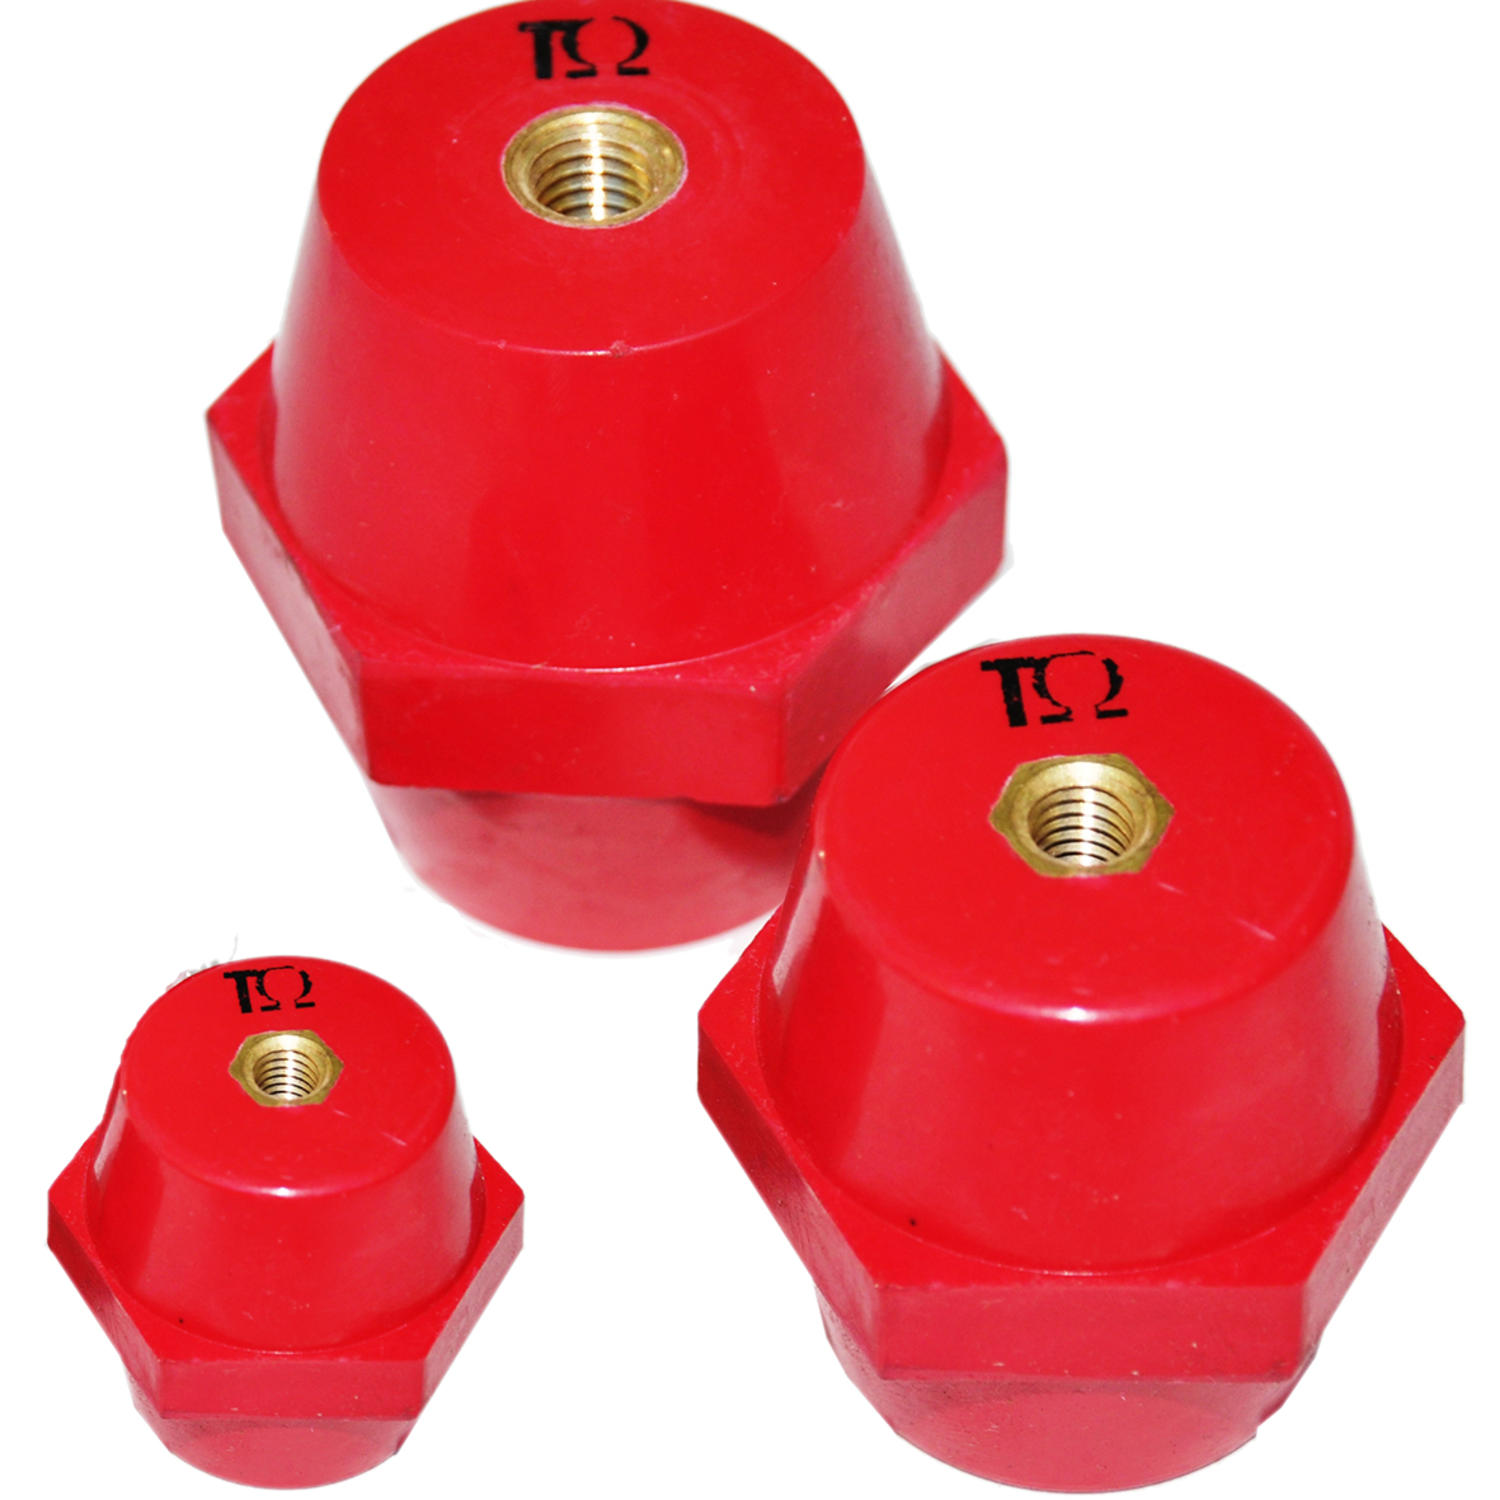 Low voltage insulators